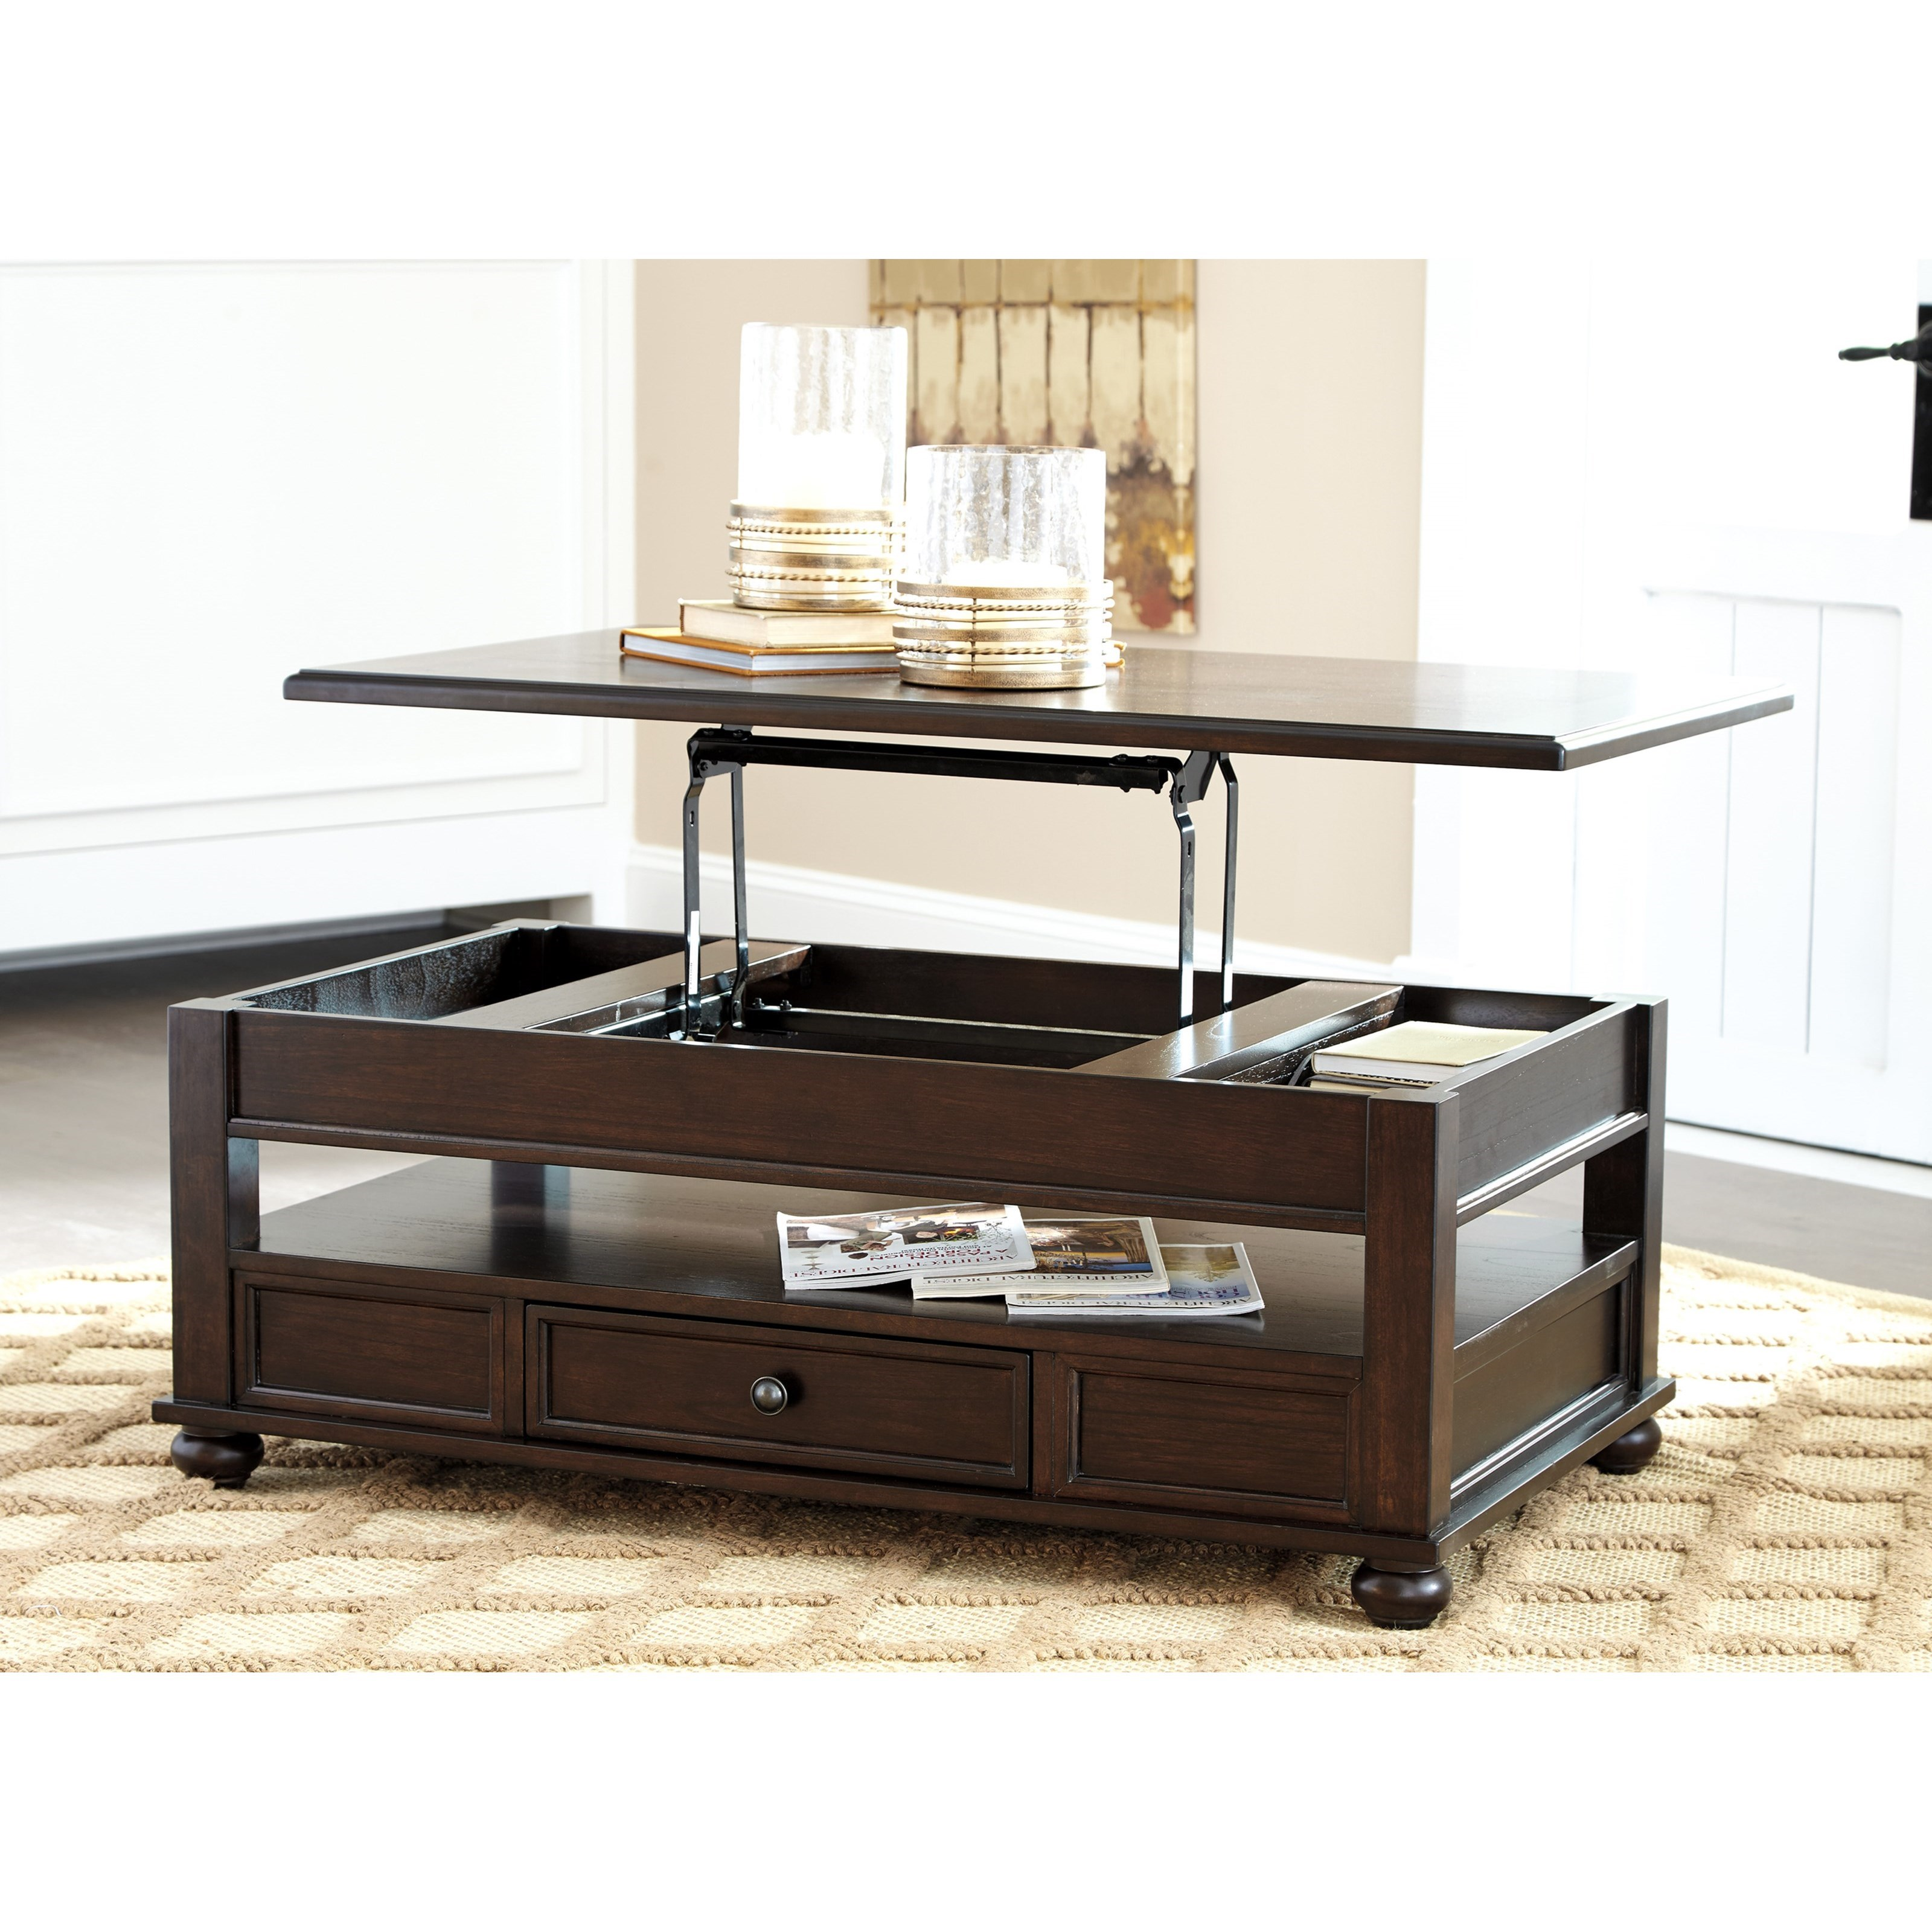 Traditional Coffee Table Sets Lift Top Cocktail Table: Ashley Signature Design Barilanni T934-9 Lift Top Cocktail